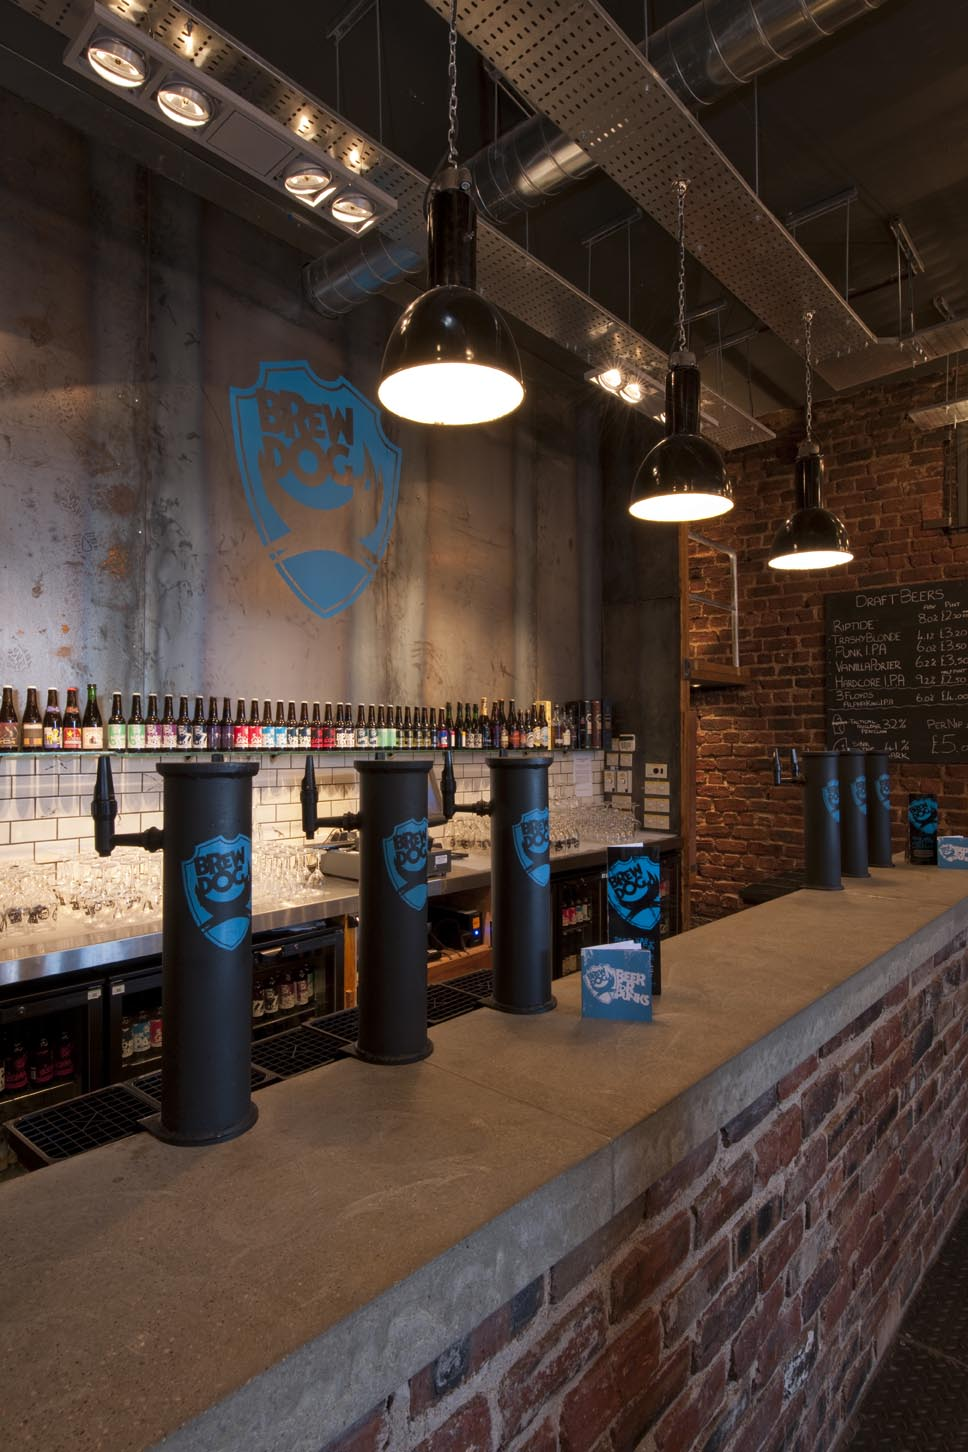 The alternative beer festival will take place at BrewDog Bars